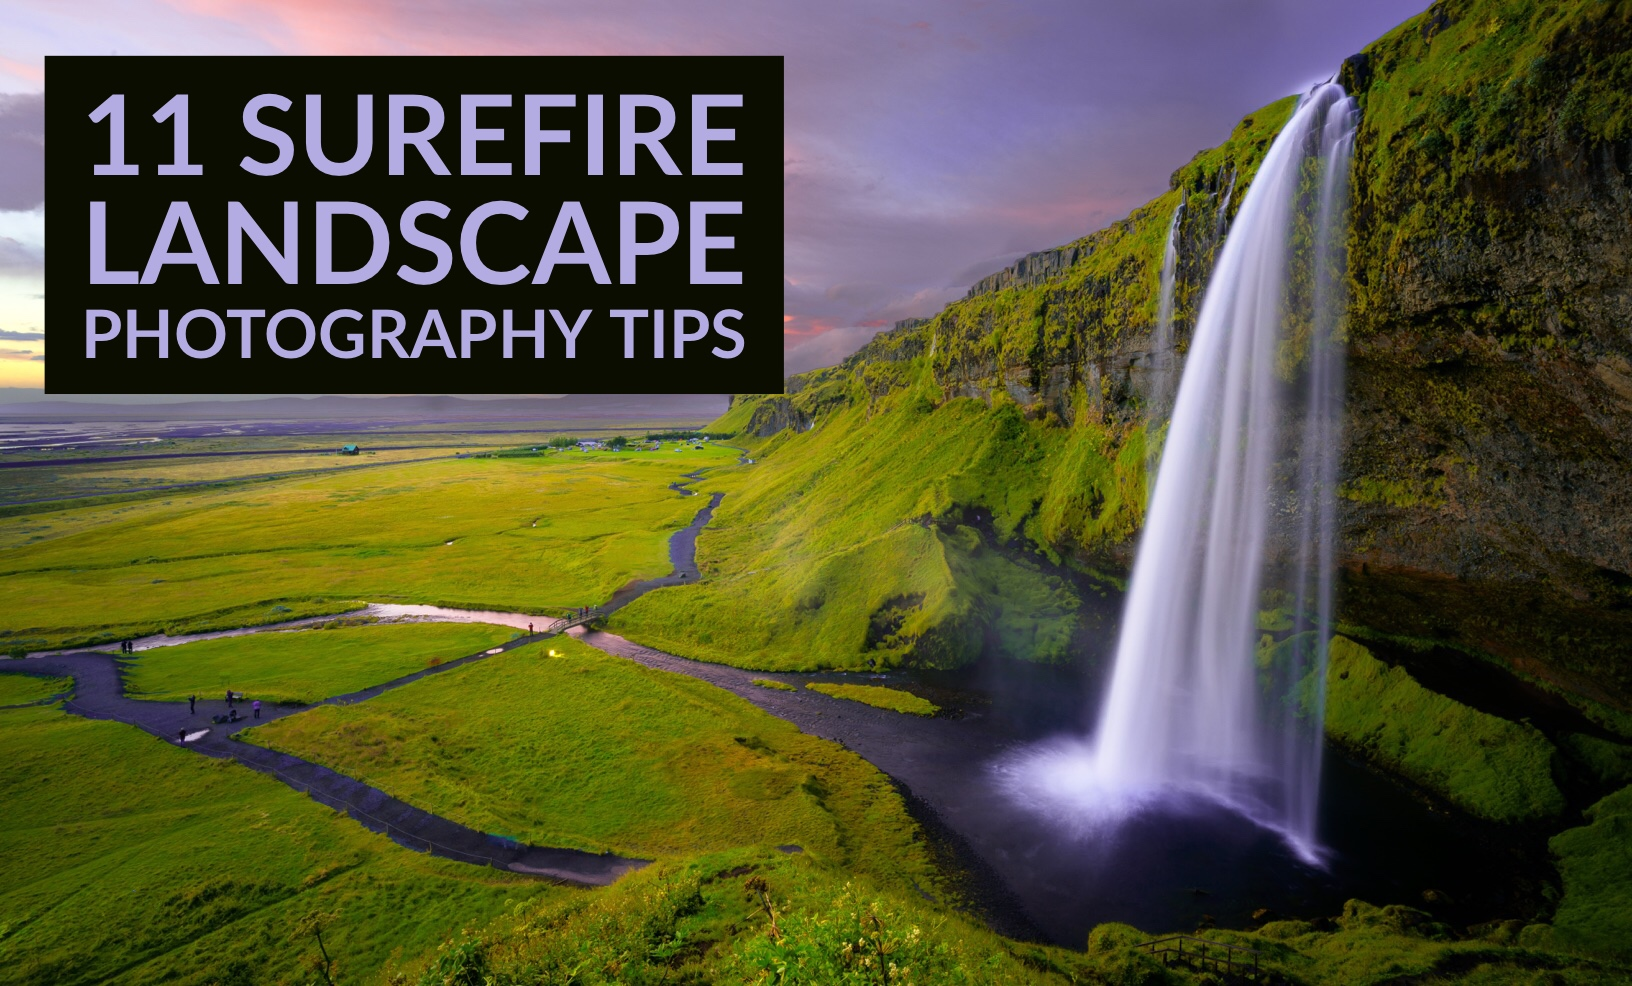 landscape-photography-tips.jpeg?fit=1632,986&ssl=1